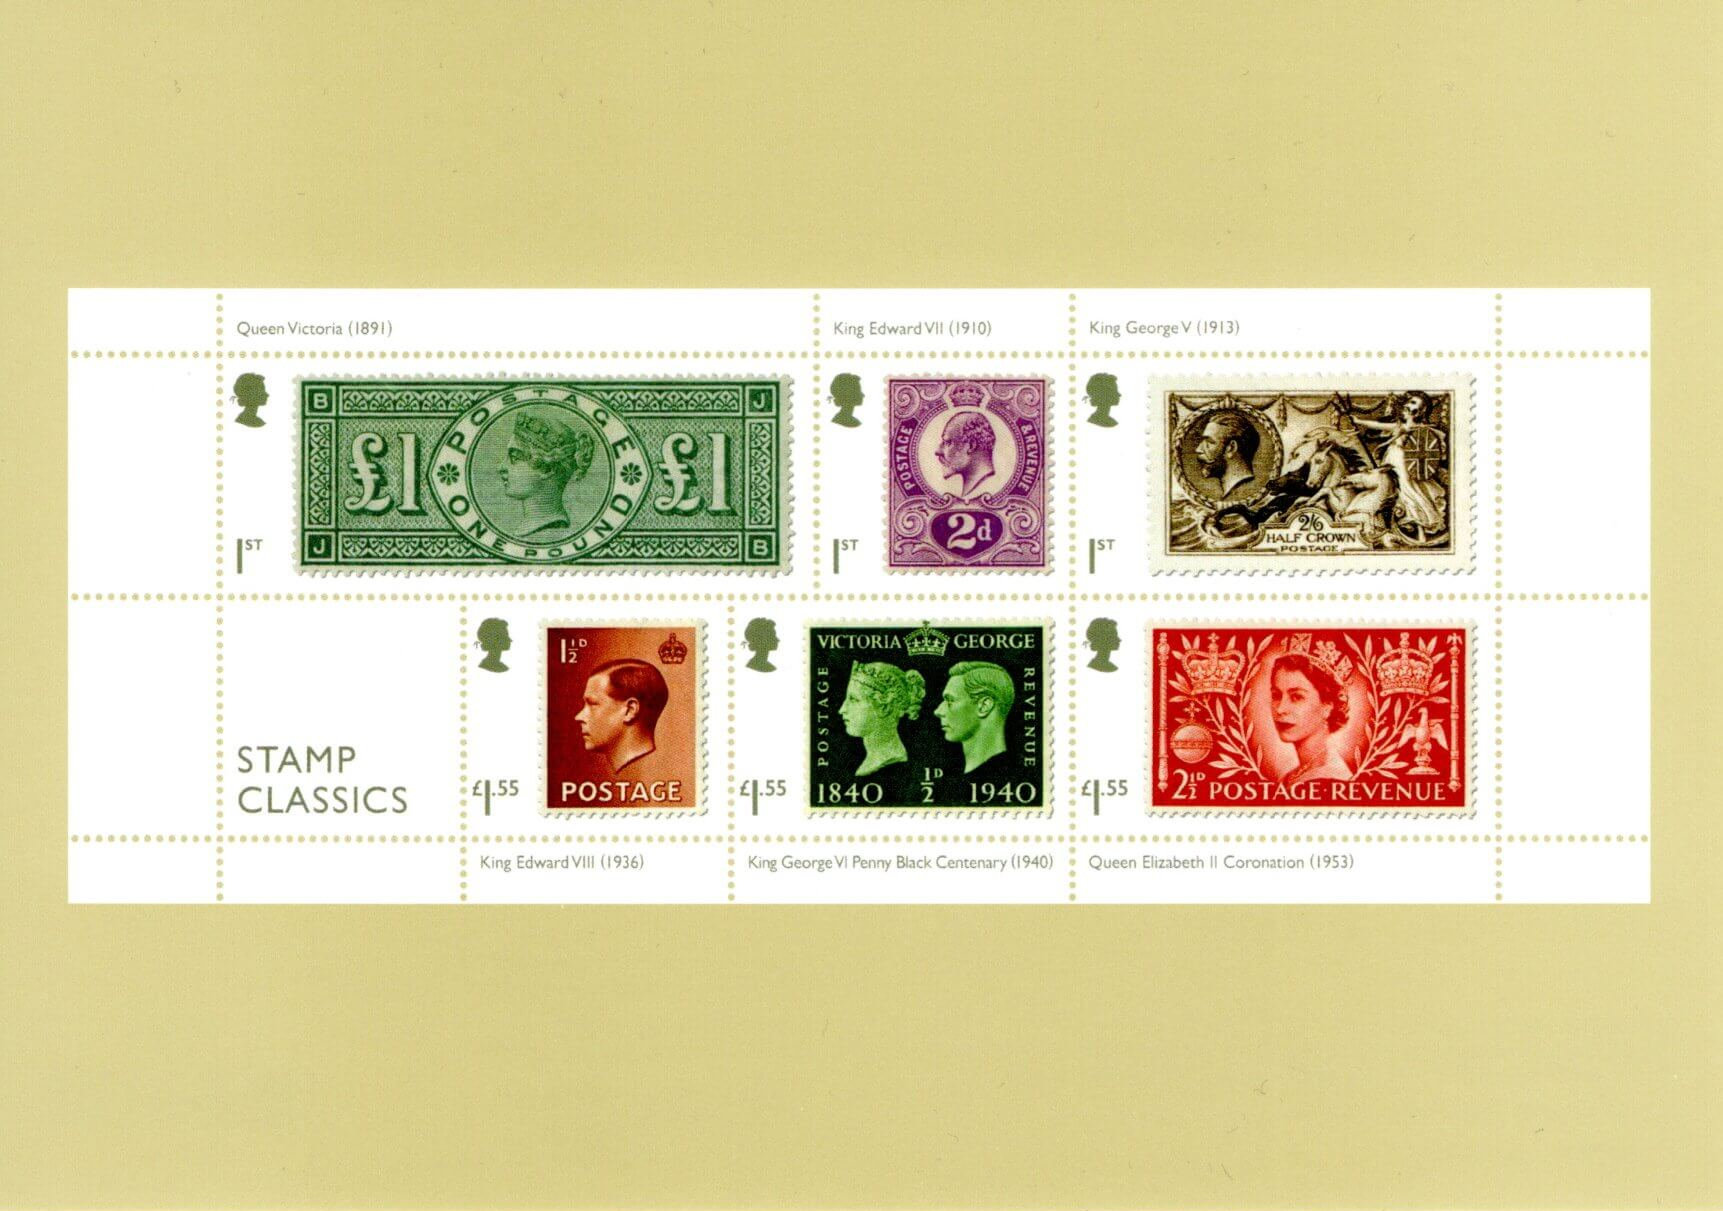 Great Britain - Stamp Classics (January 15, 2019) miniature sheet of 2019 PHQ card